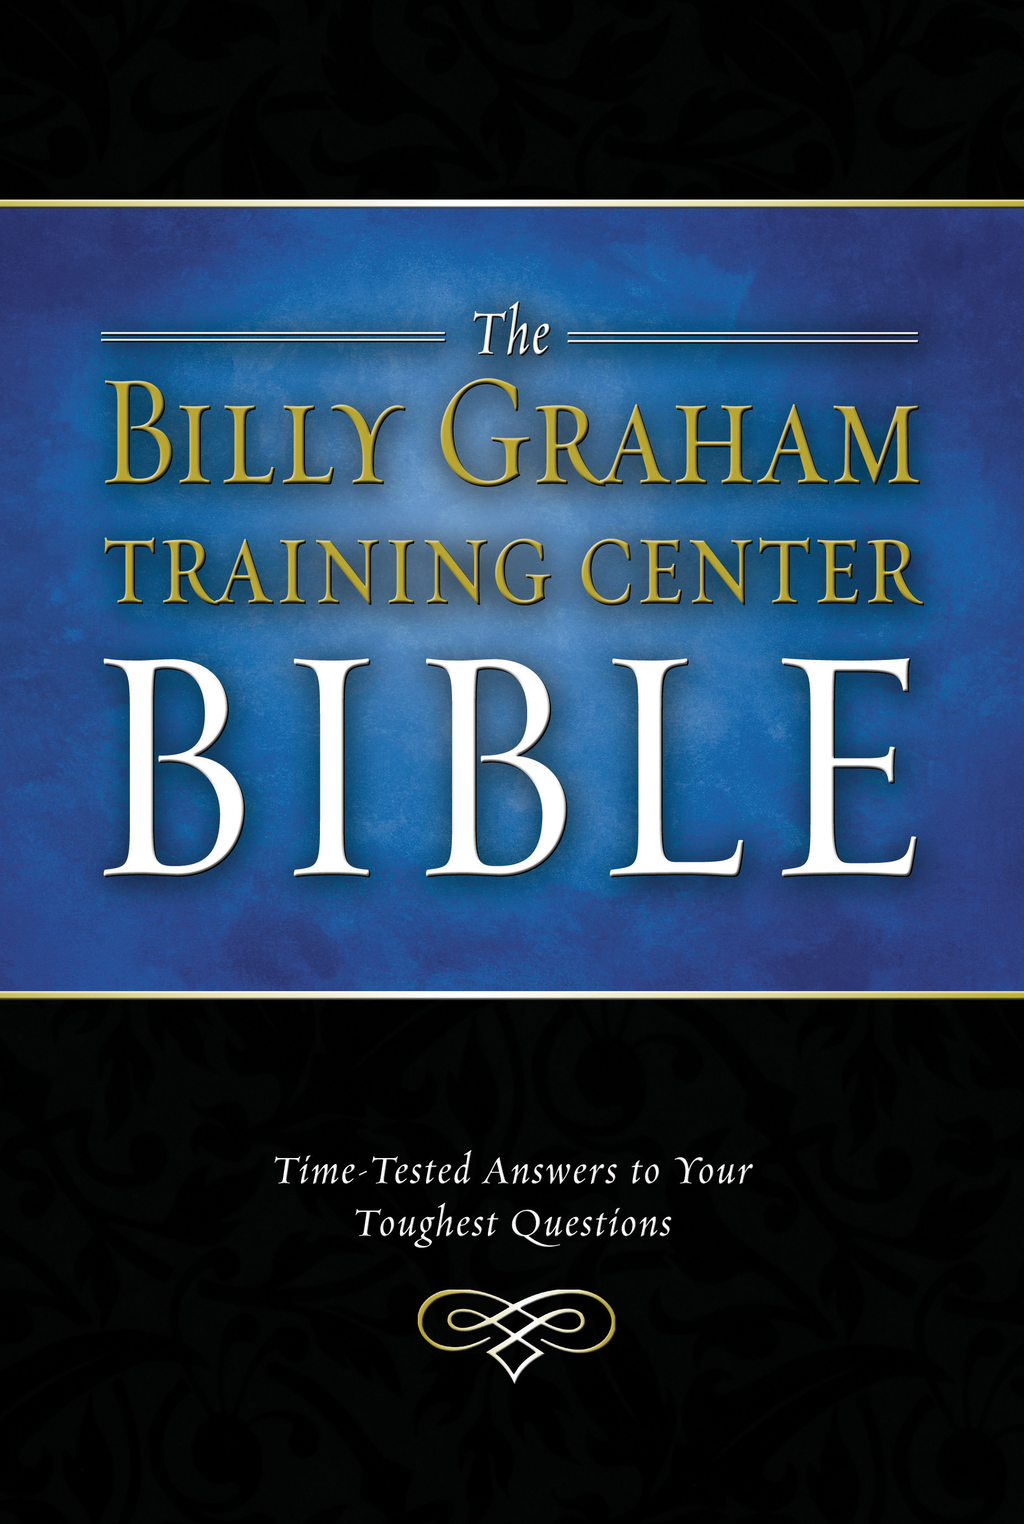 The Billy Graham Training Center Bible